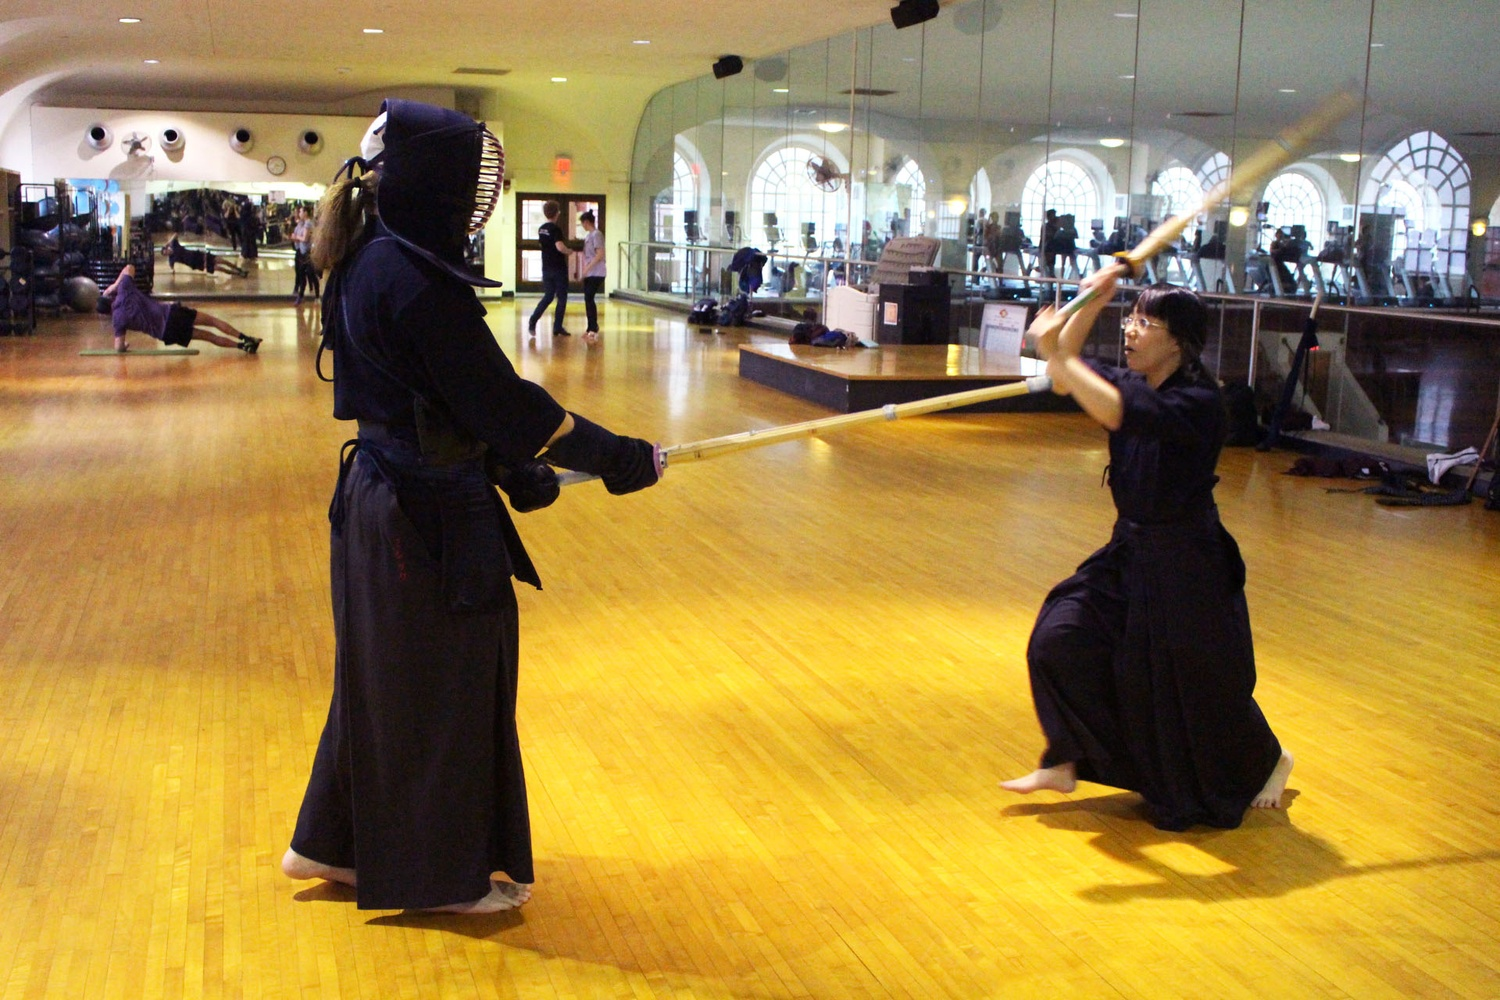 """Members of Harvard's Kendo Club gathered on Tuesday to show off their unique sport. On the appeal of Kendo as an activity and an art form, Mary Beth Schleicher, '18, offered her own perspective: """"Kendo is more than just a sport. It's also about learning to look at things in a new way."""""""